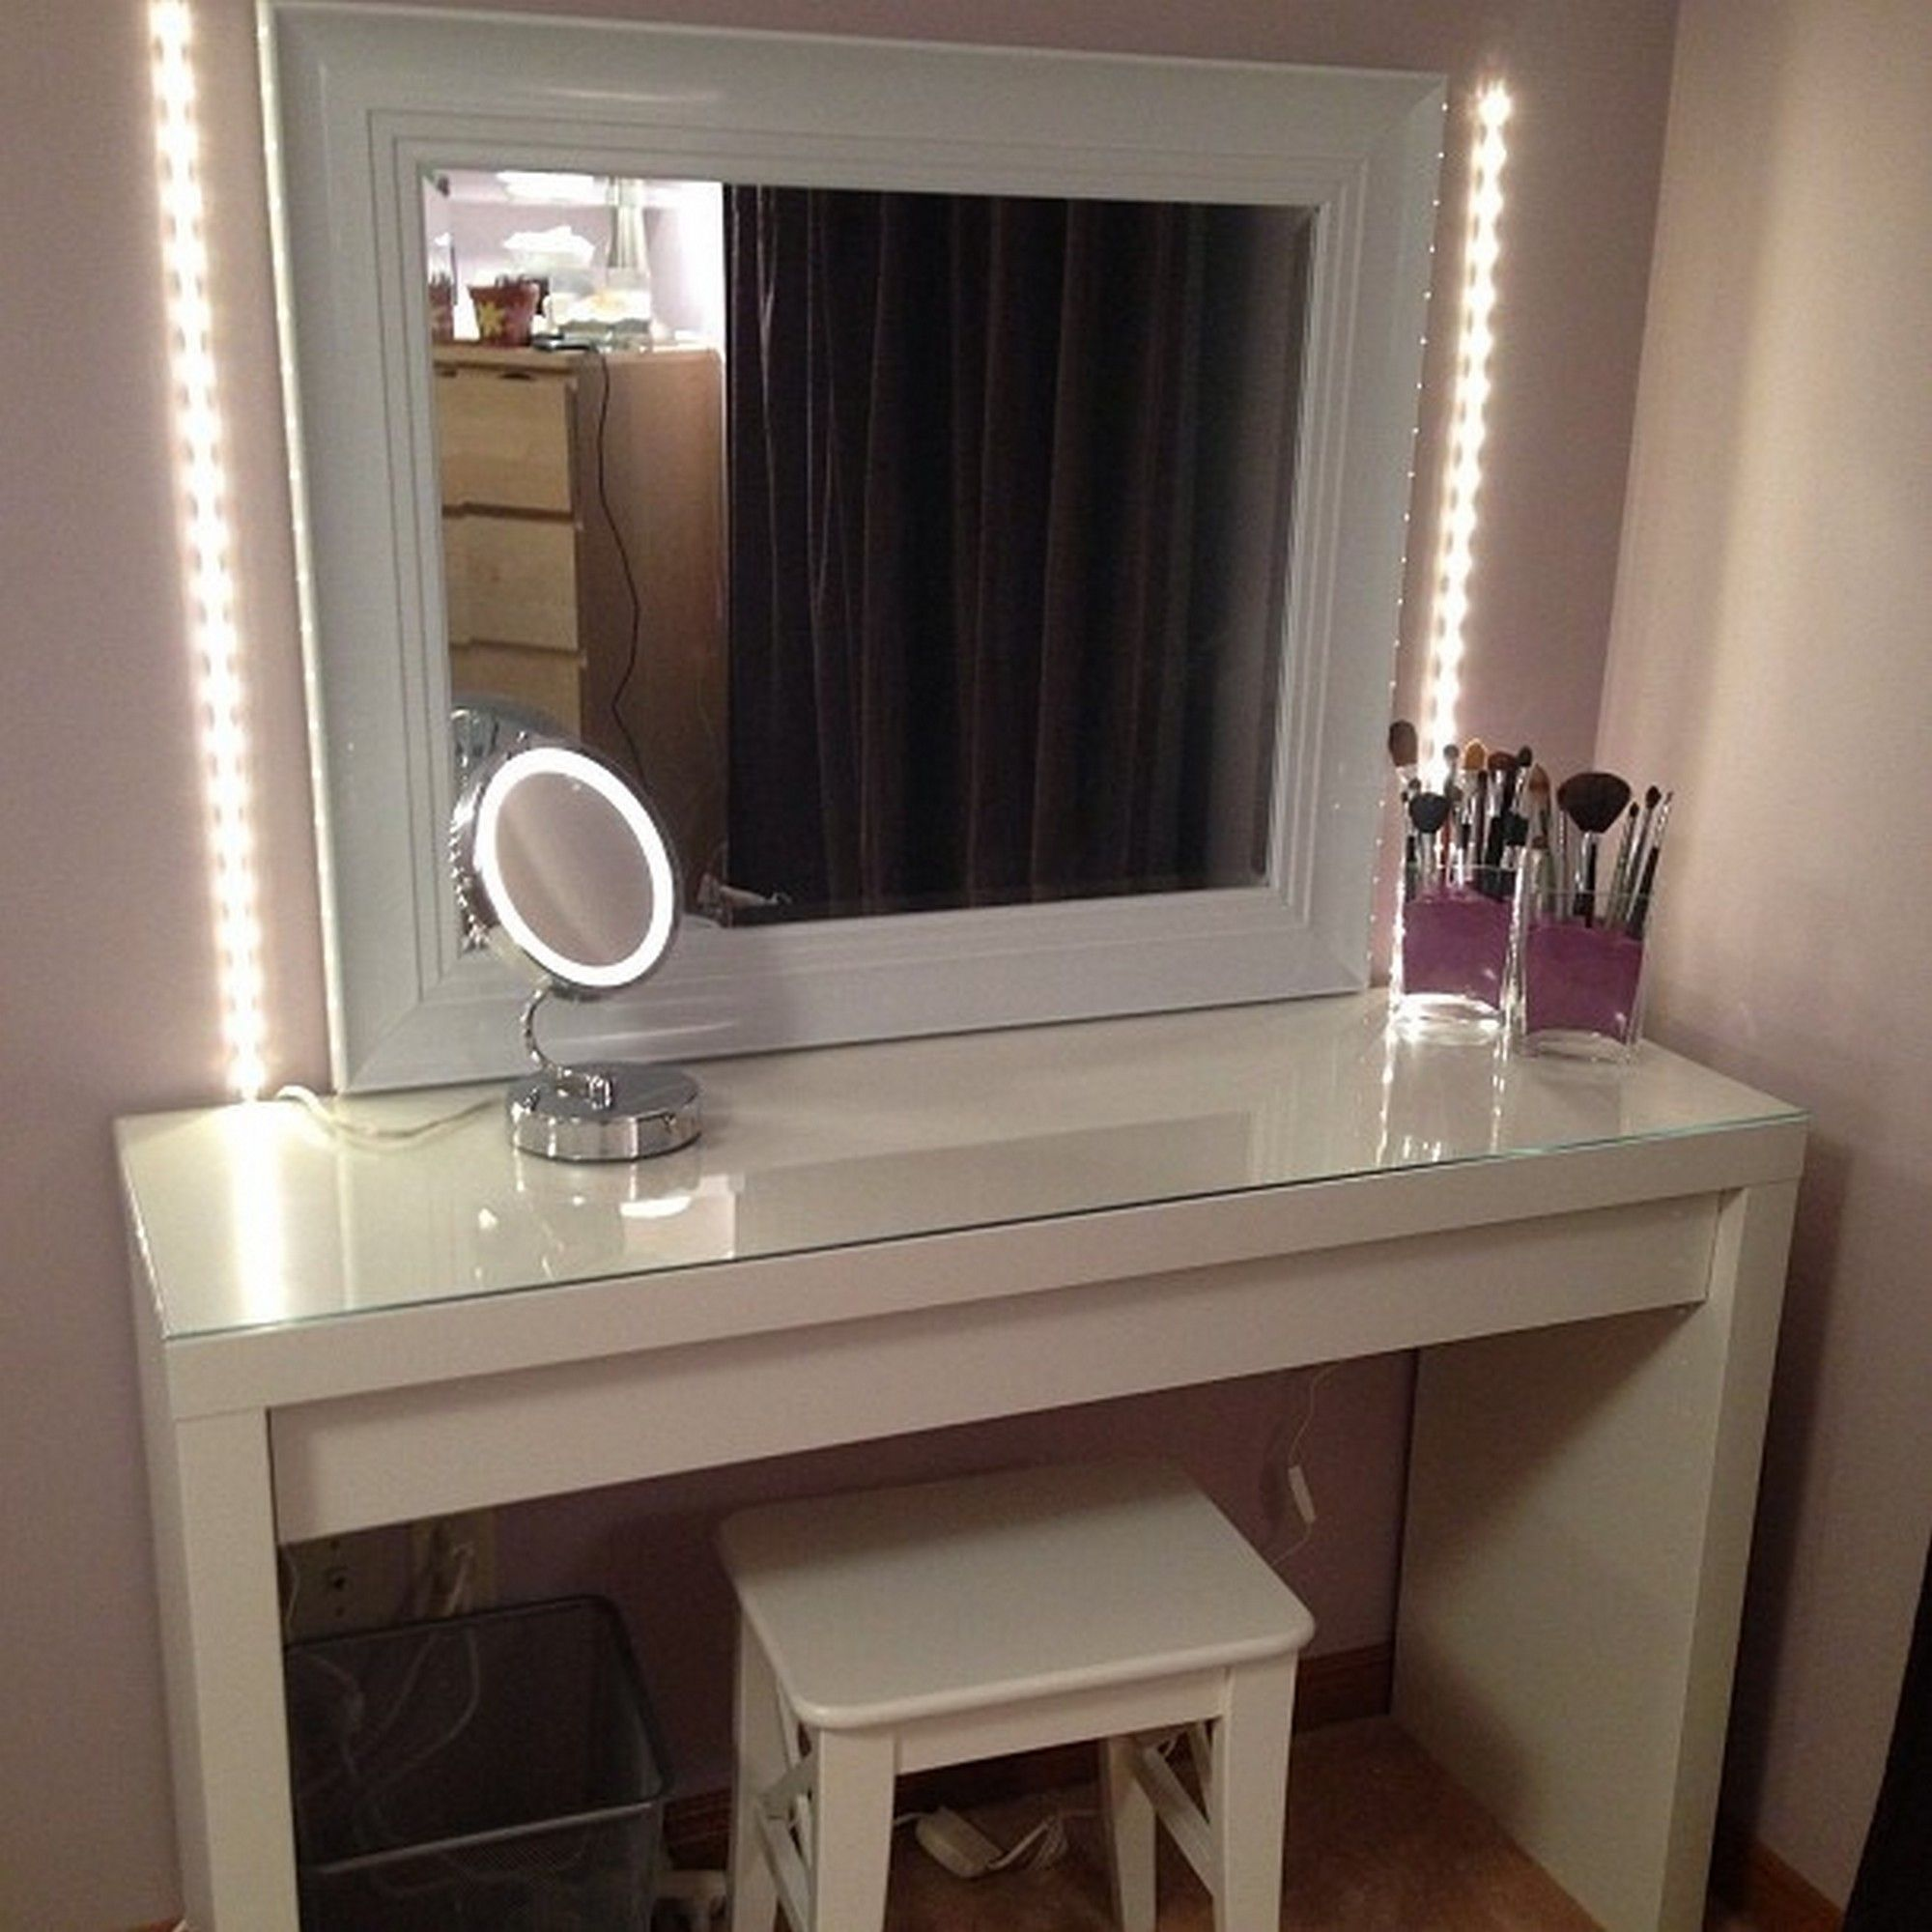 Furniture Diy White Makeup Table With Square Mirror And Chair Makeup Table Pictures Ikea Makeup Table Beauty Room Diy Vanity Mirror Bedroom Makeup Vanity